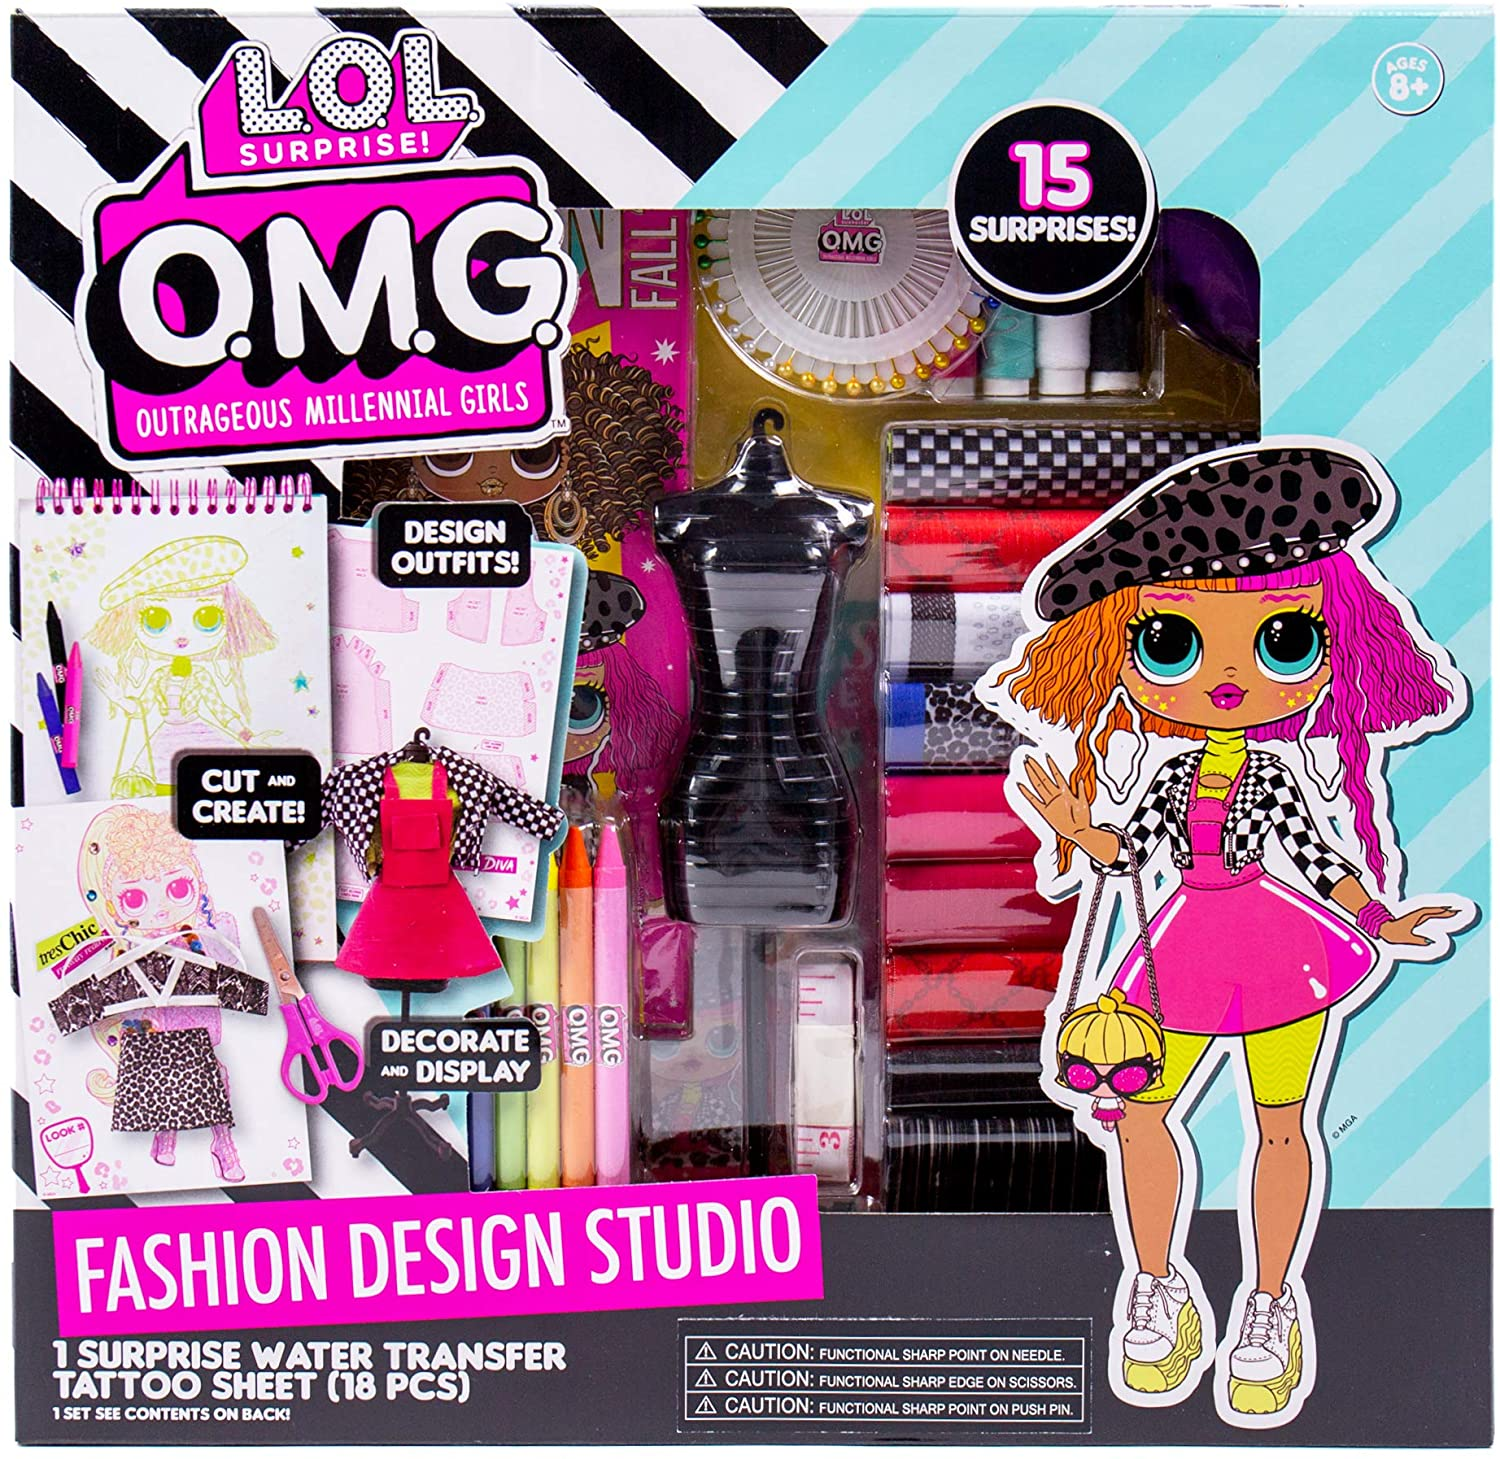 Lol Omg Fashion Design Studio Diy Create Your Own Outfits For Omg Dolls Youloveit Com